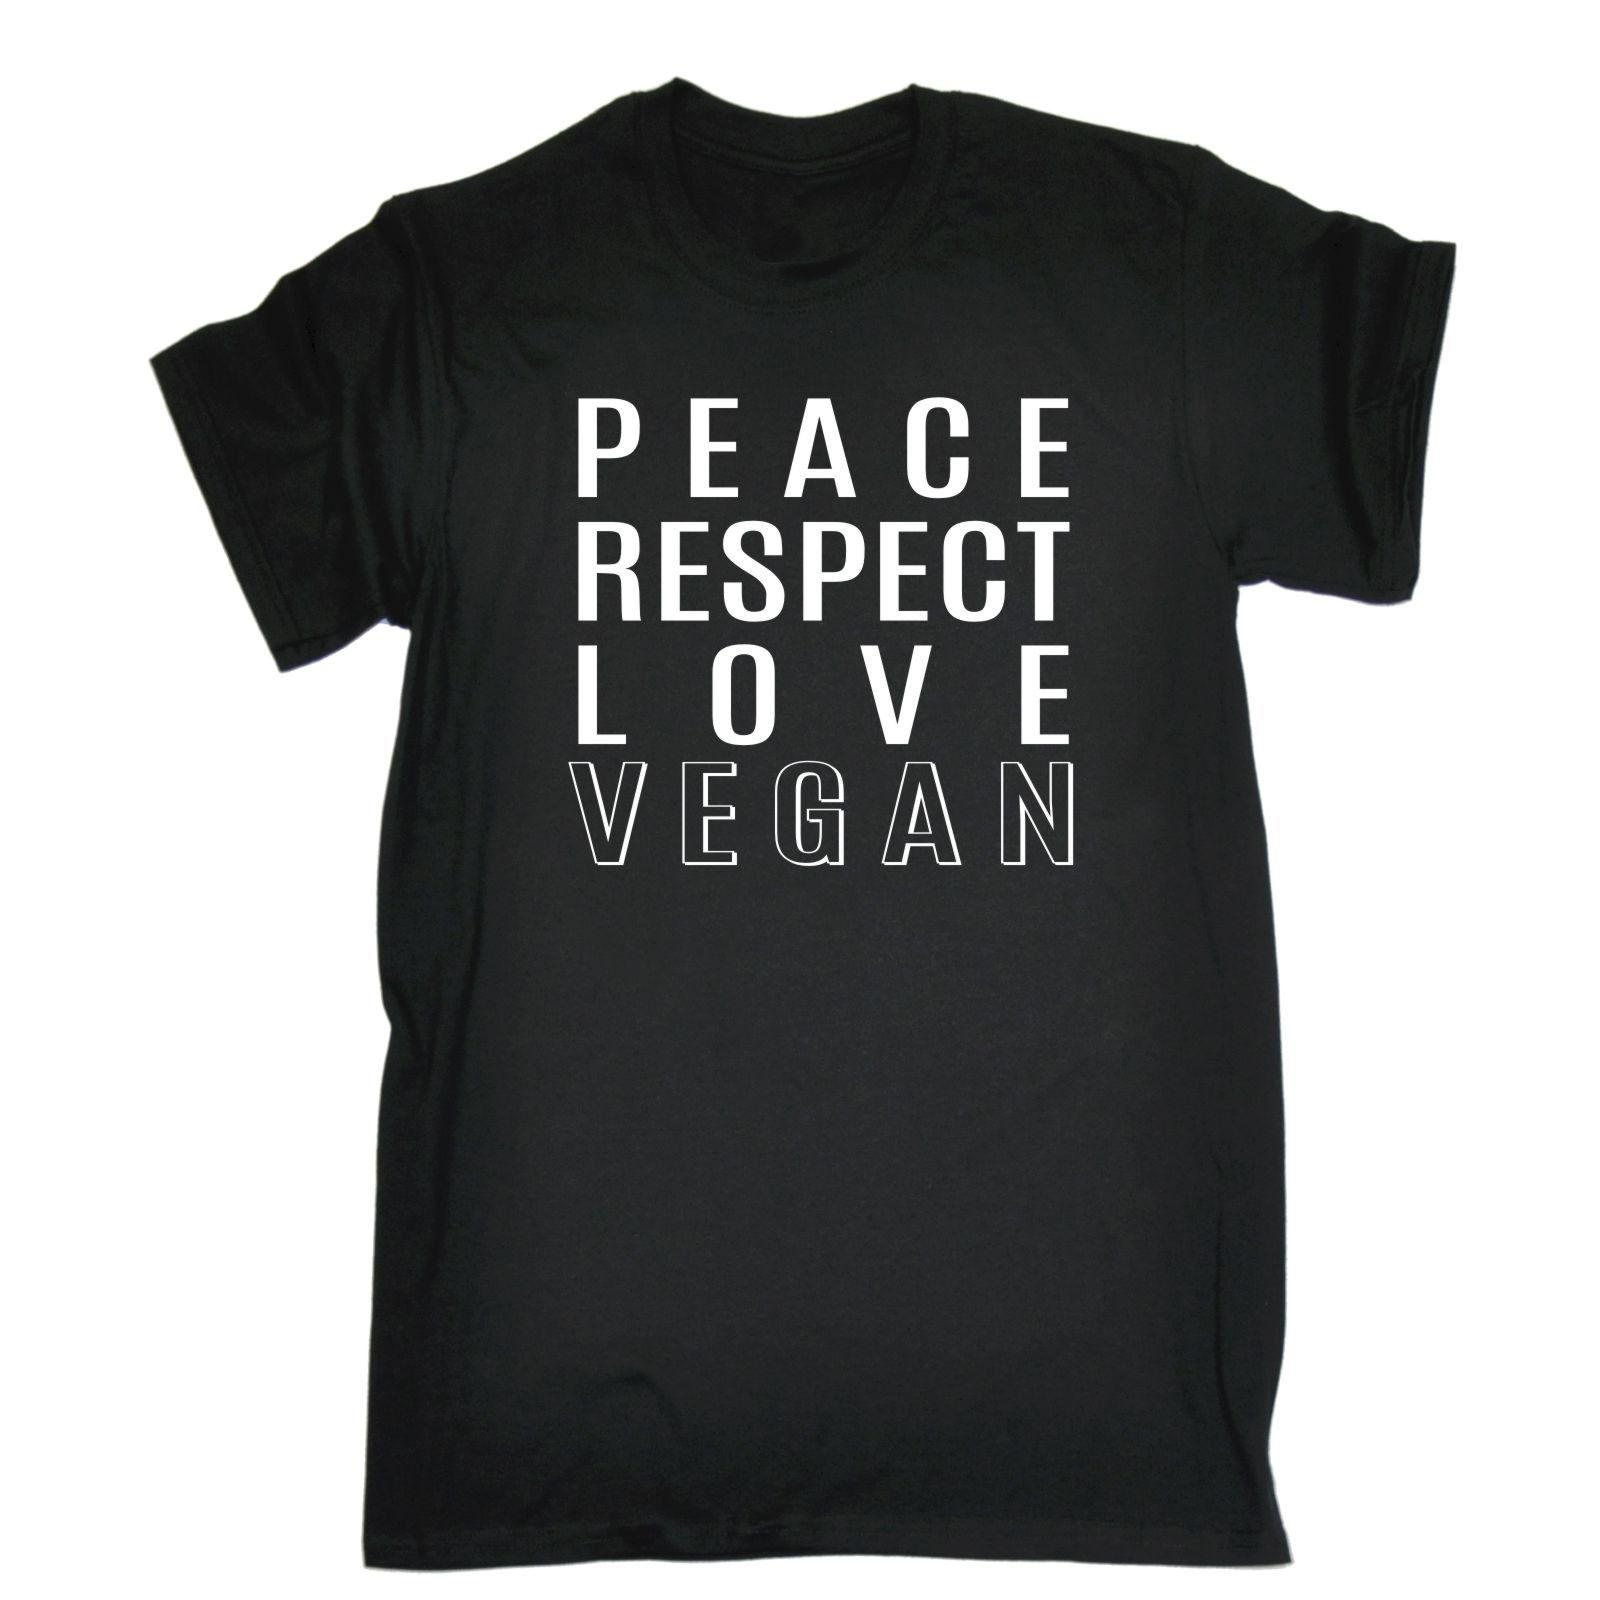 Peace Respect Love Vegan T SHIRT Vegetarian Hippie Funny Gift Birthday New Tee Print Printed Fashionable Round Shirt Best Tshirts From